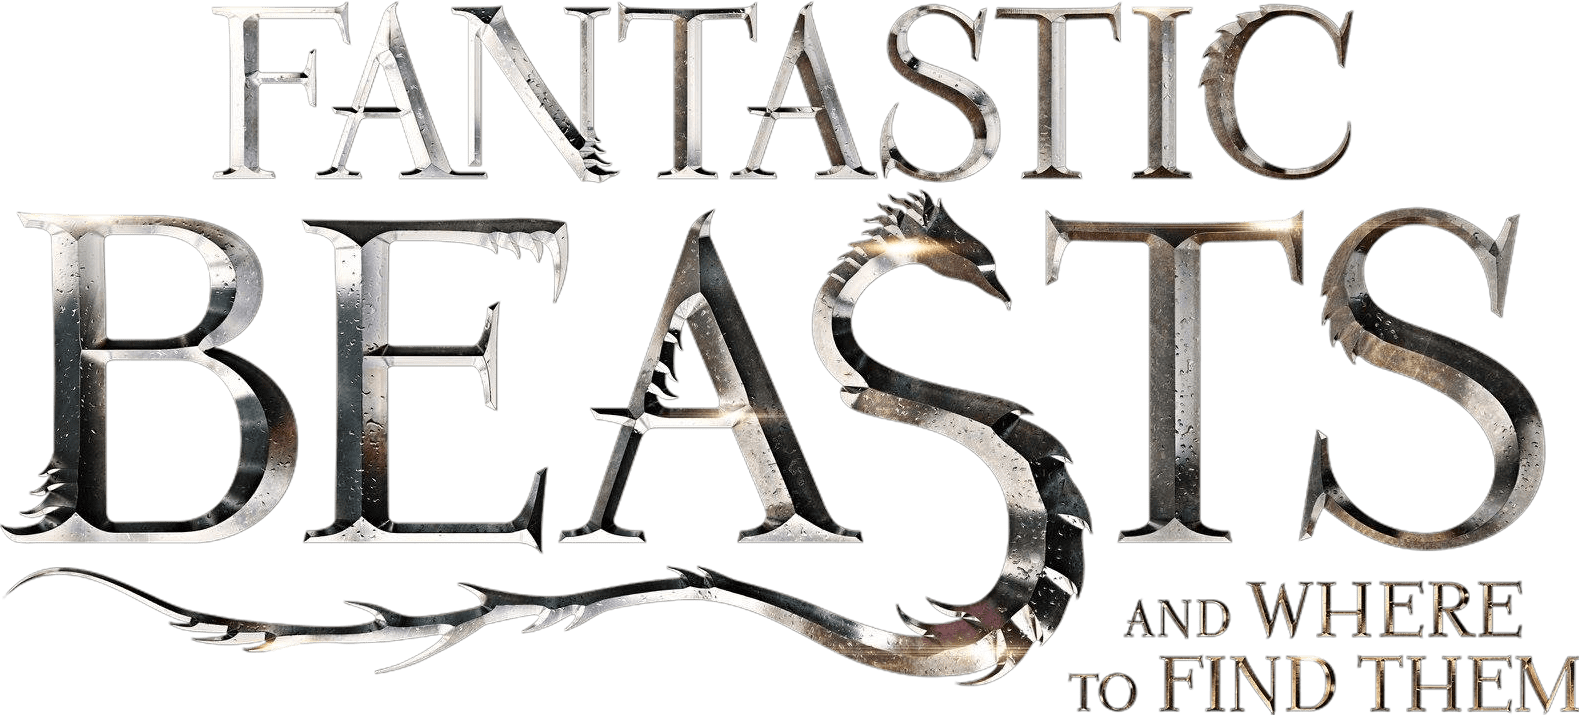 Fantastic Beasts and Where To Find Them Logo transparent PNG.